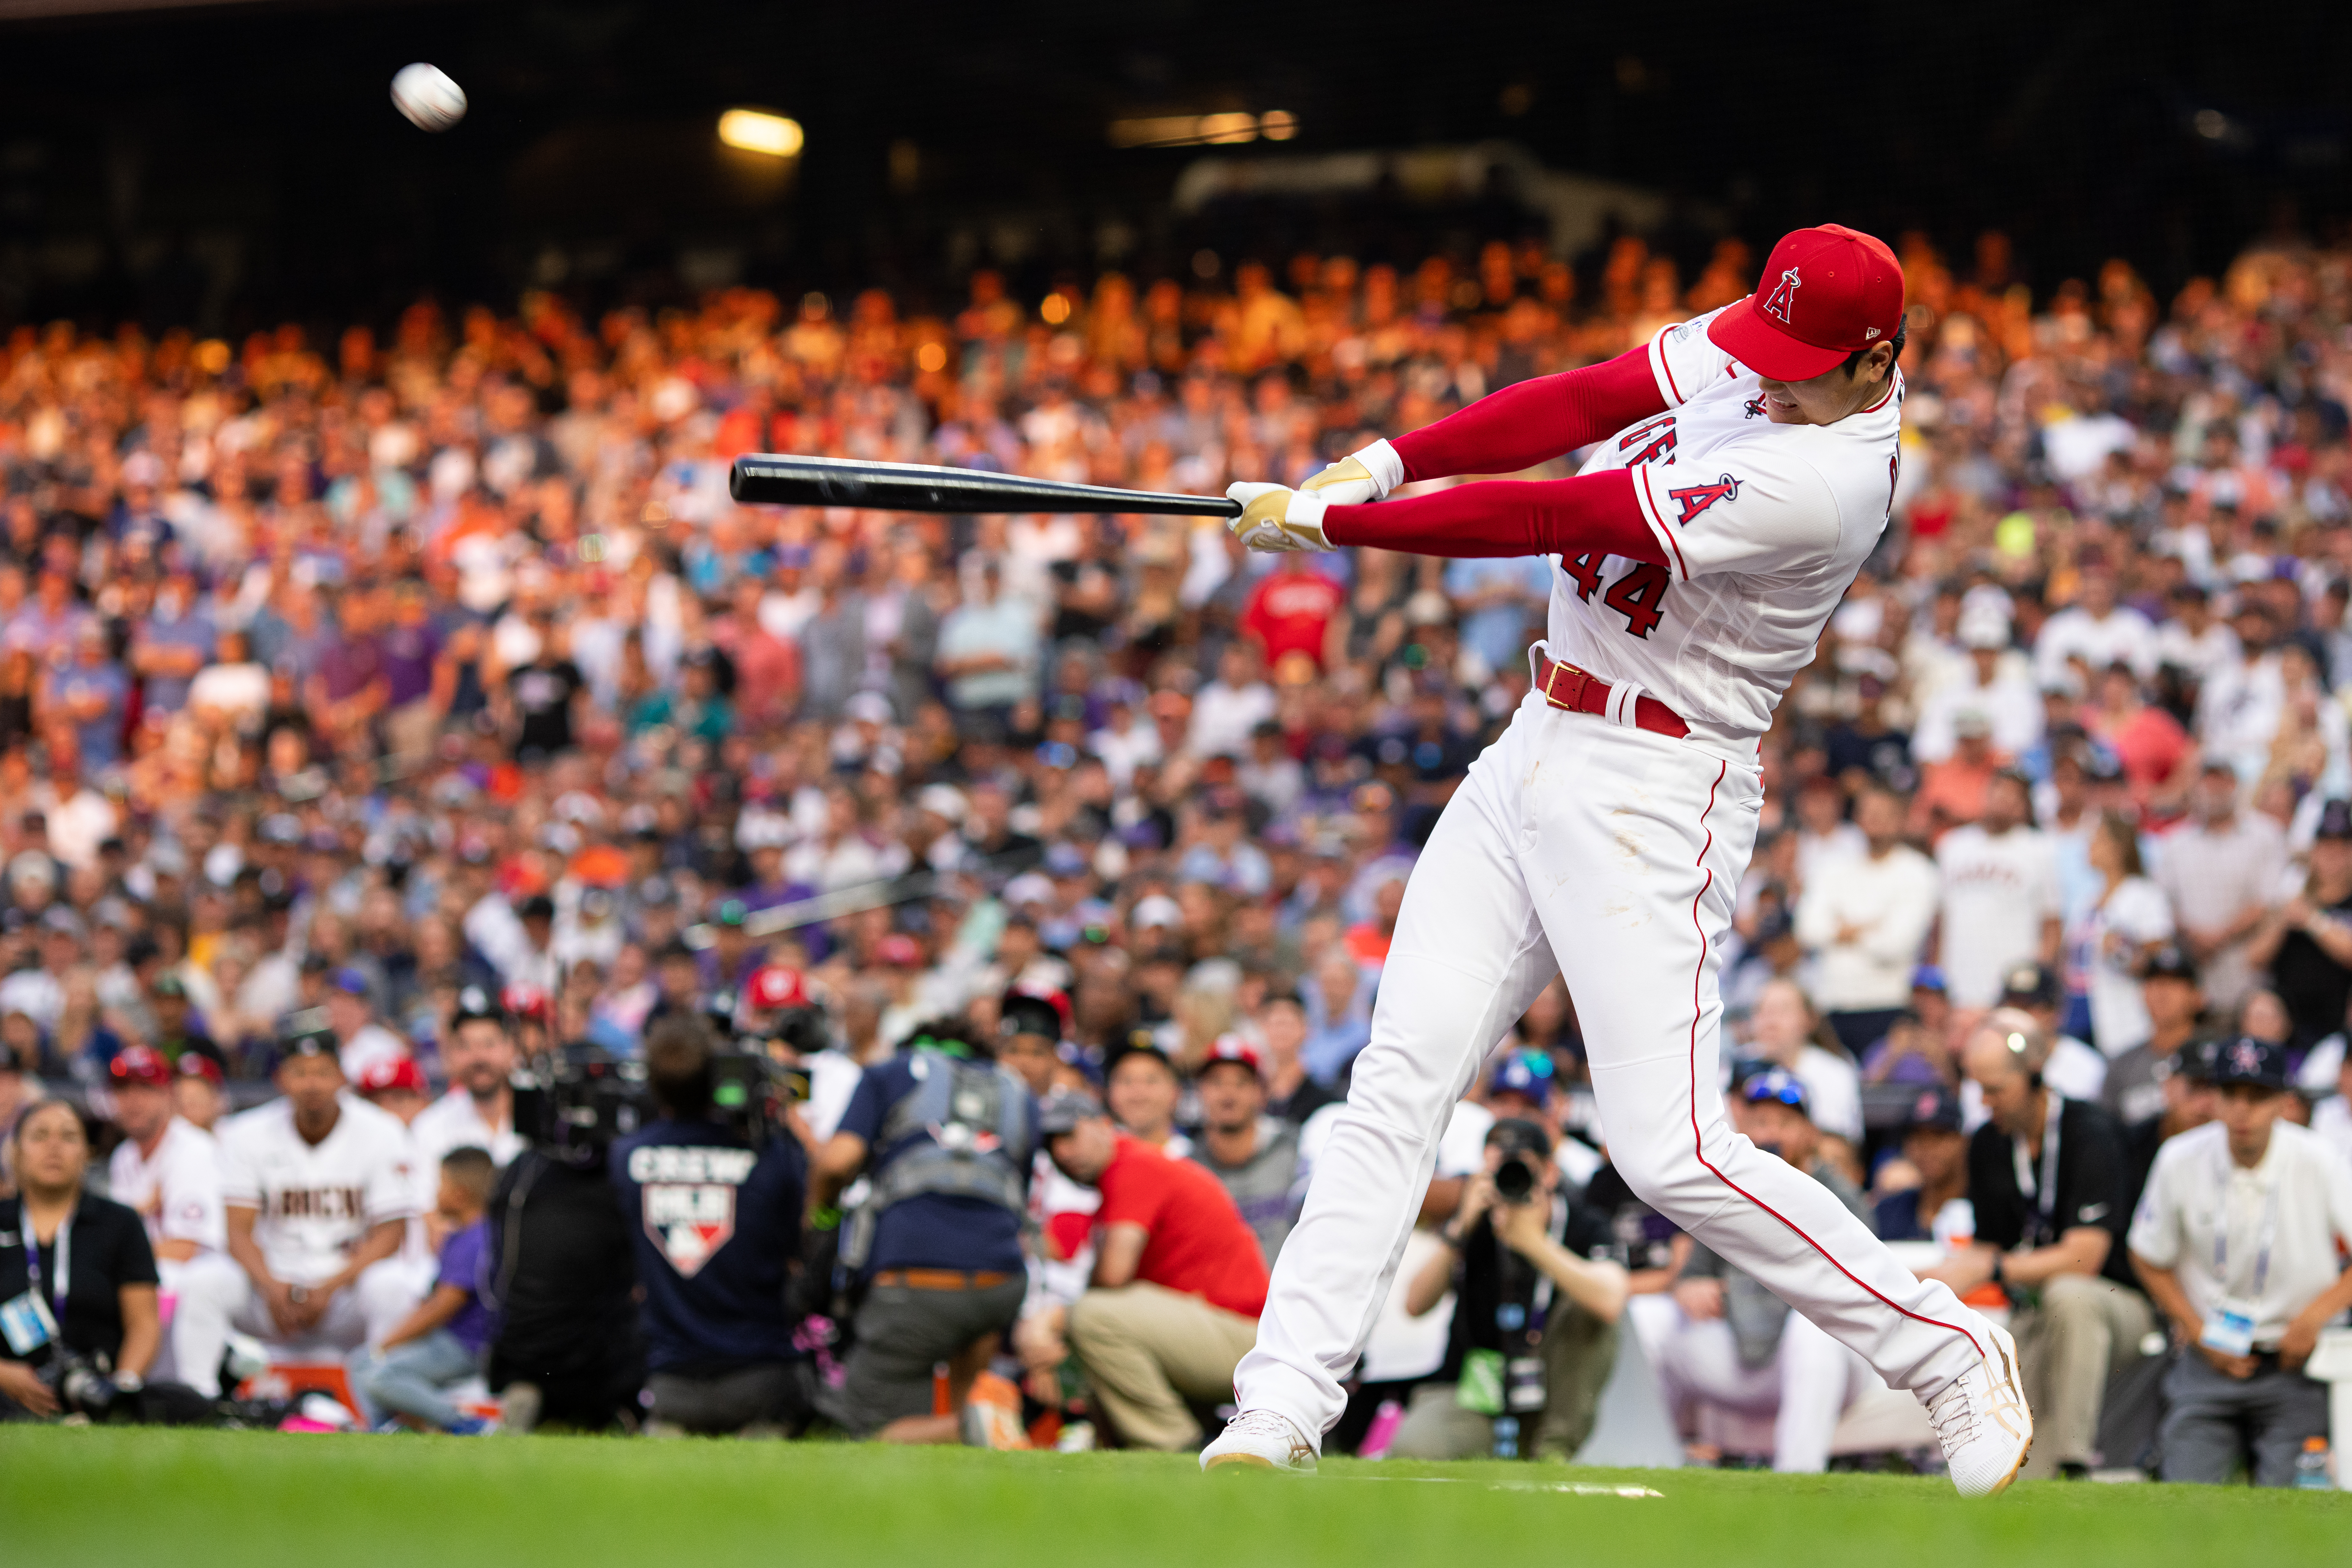 Shohei Ohtani #17 of the Los Angeles Angels (wearing #44 in honor of Hank Aaron) bats during the 2021 T-Mobile Home Run Derby at Coors Field on July 12, 2021 in Denver, Colorado.